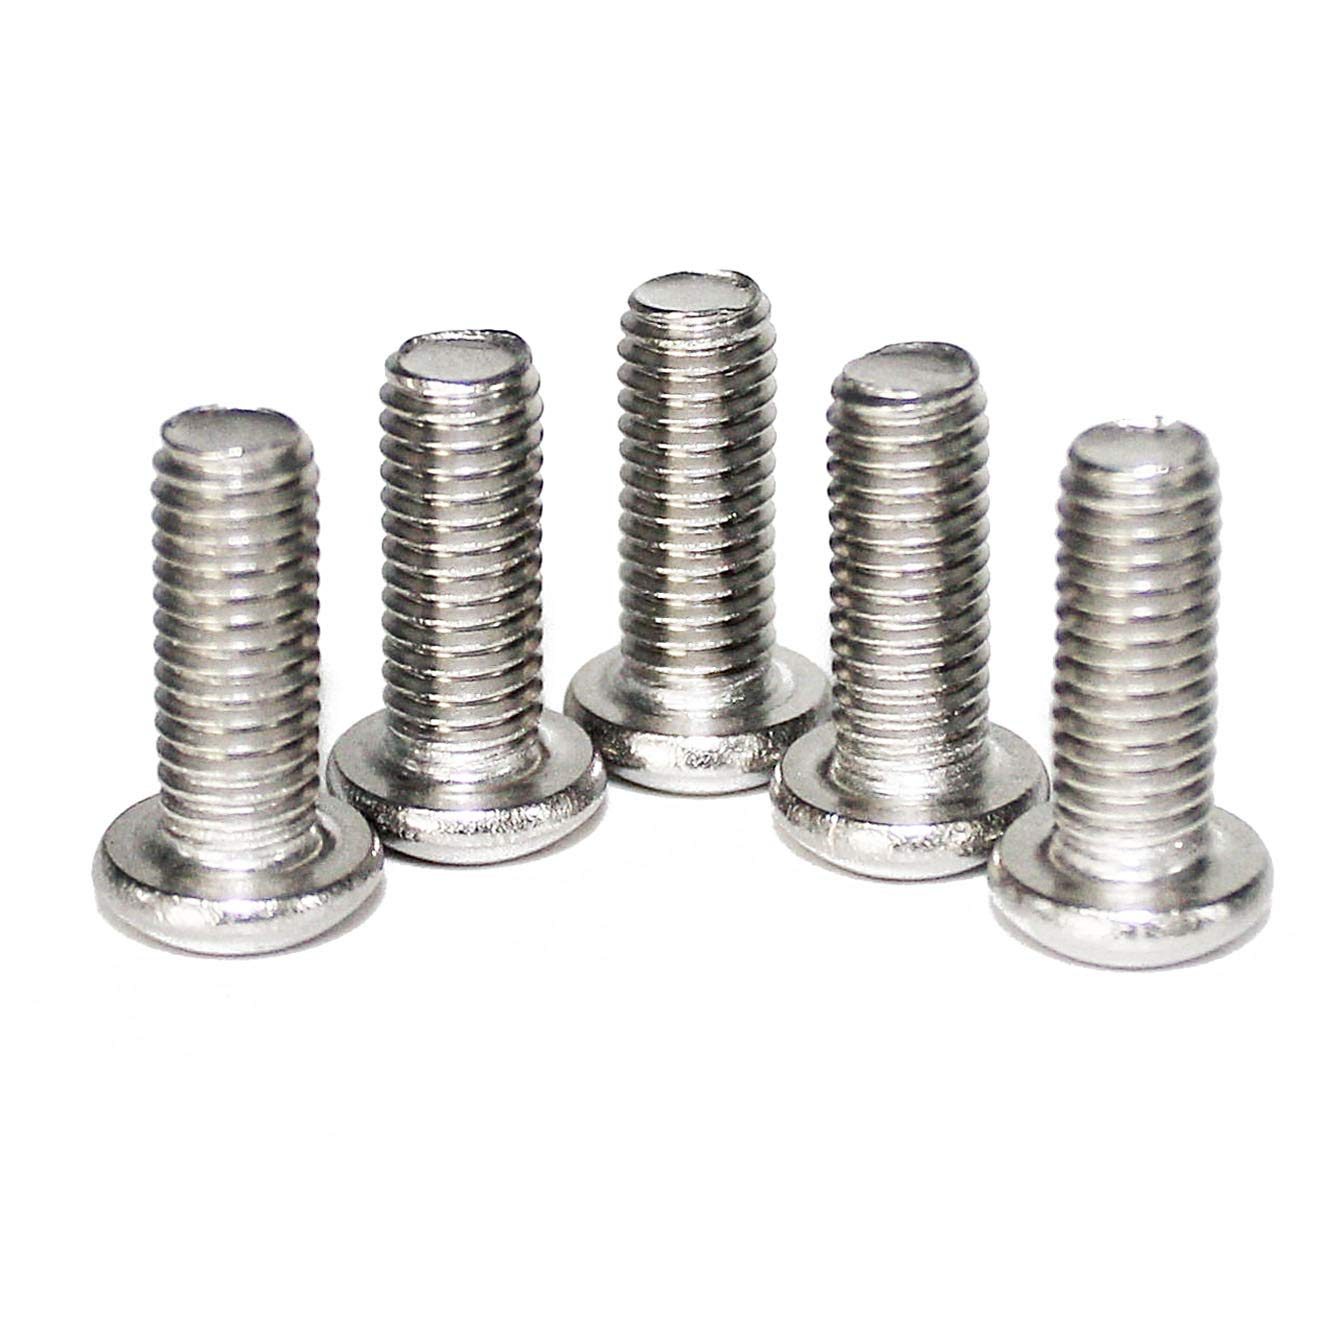 Allen Hex Drive 100 Pcs M3-0.50 x 5mm Button Head Socket Cap Screws ISO 7380 Passivated 18-8 Stainless Steel by Fullerkreg,Come in an Easy-use Storage Case